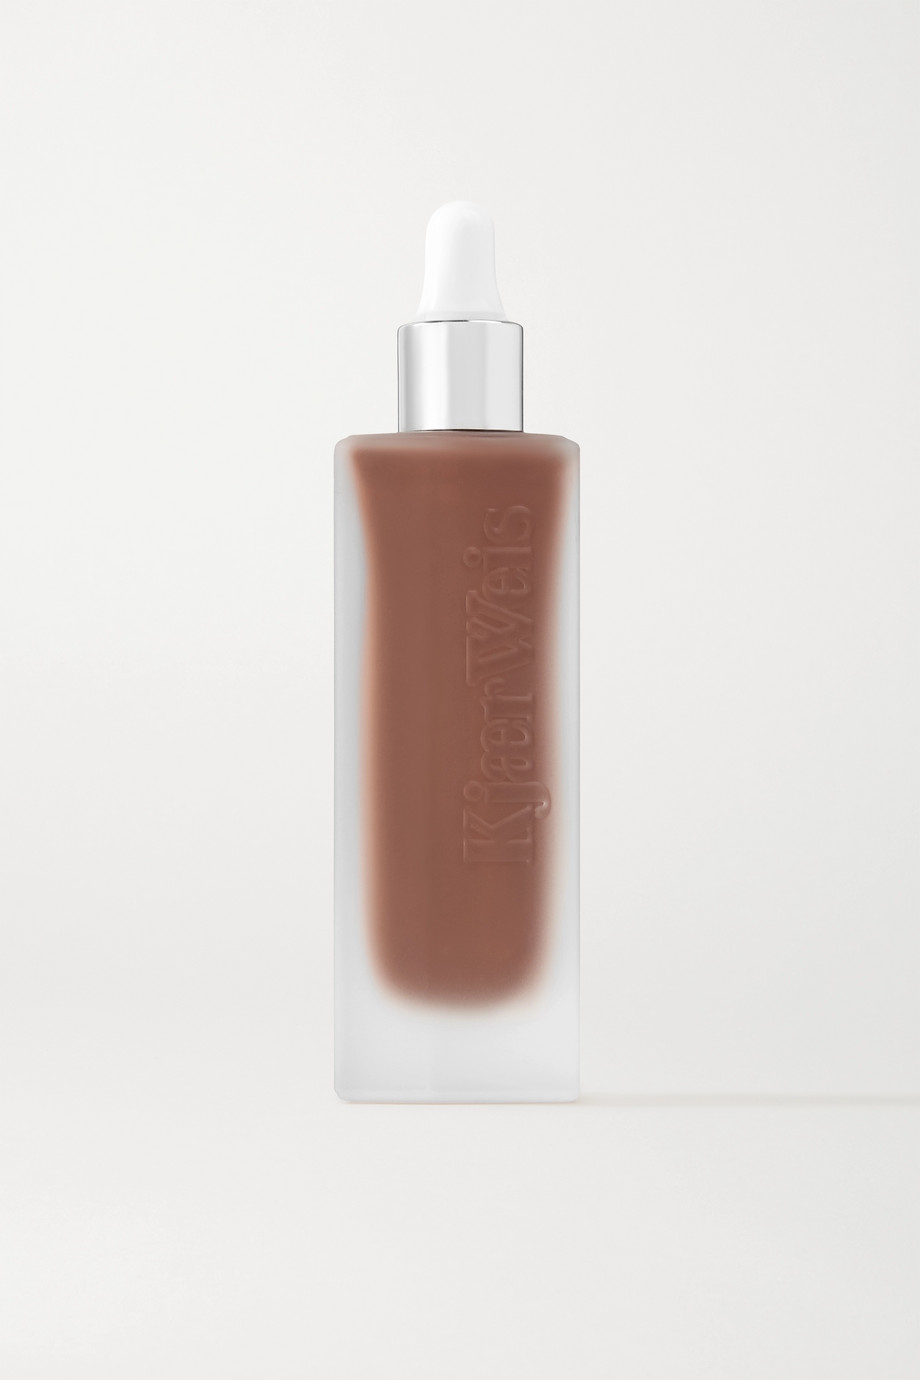 Kjaer Weis Invisible Touch Liquid Foundation - Impeccable D350, 30ml